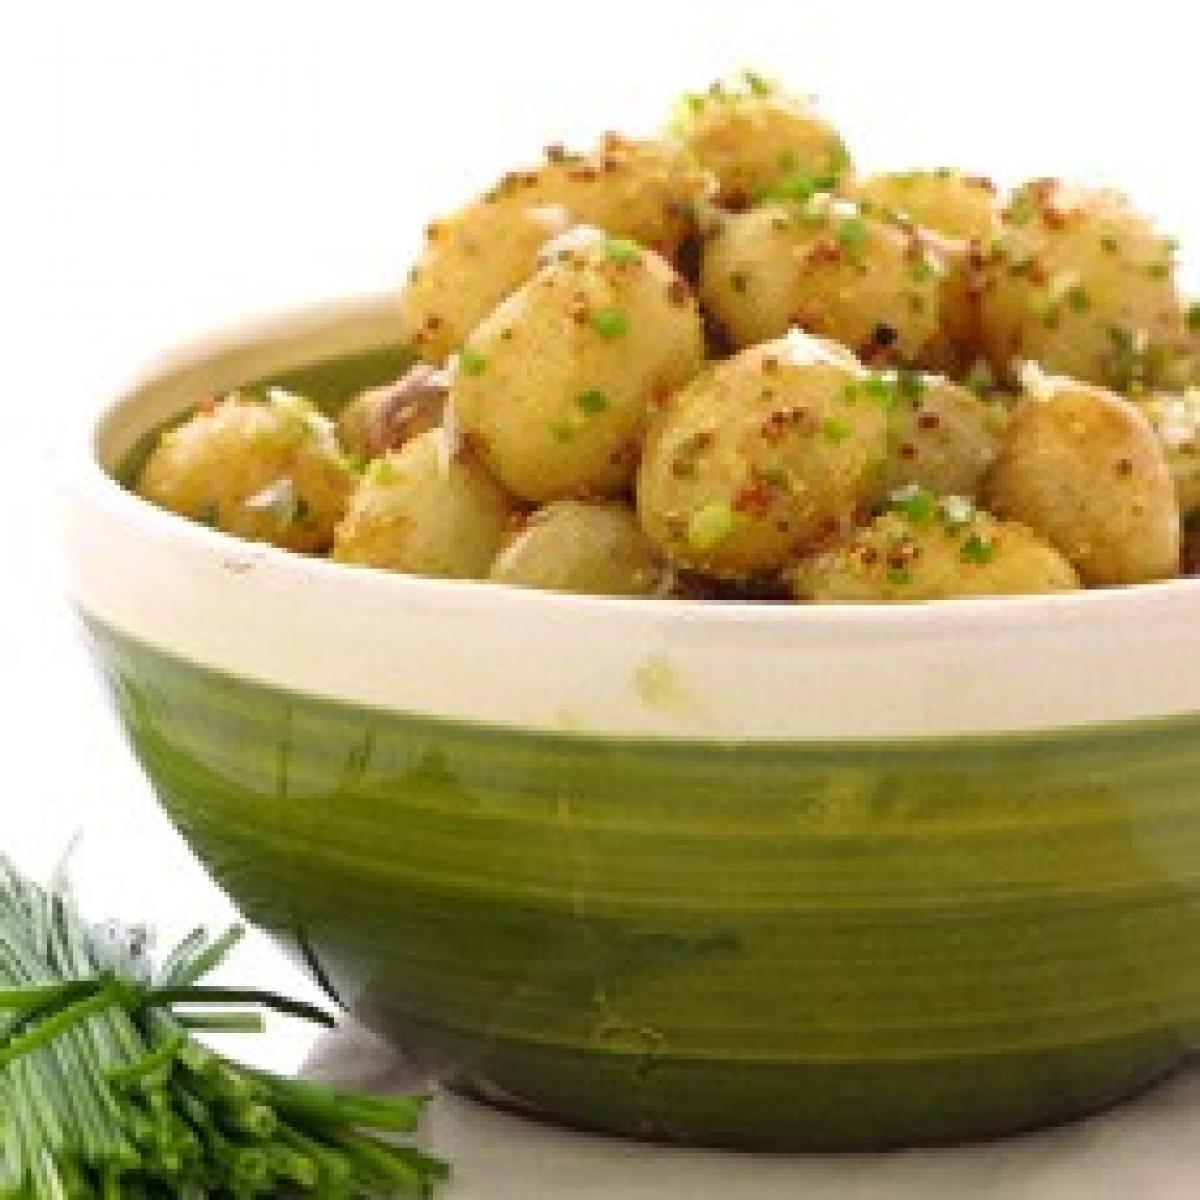 A picture of Delia's Warm Potato Salad with Lemon and Chive Vinaigrette recipe